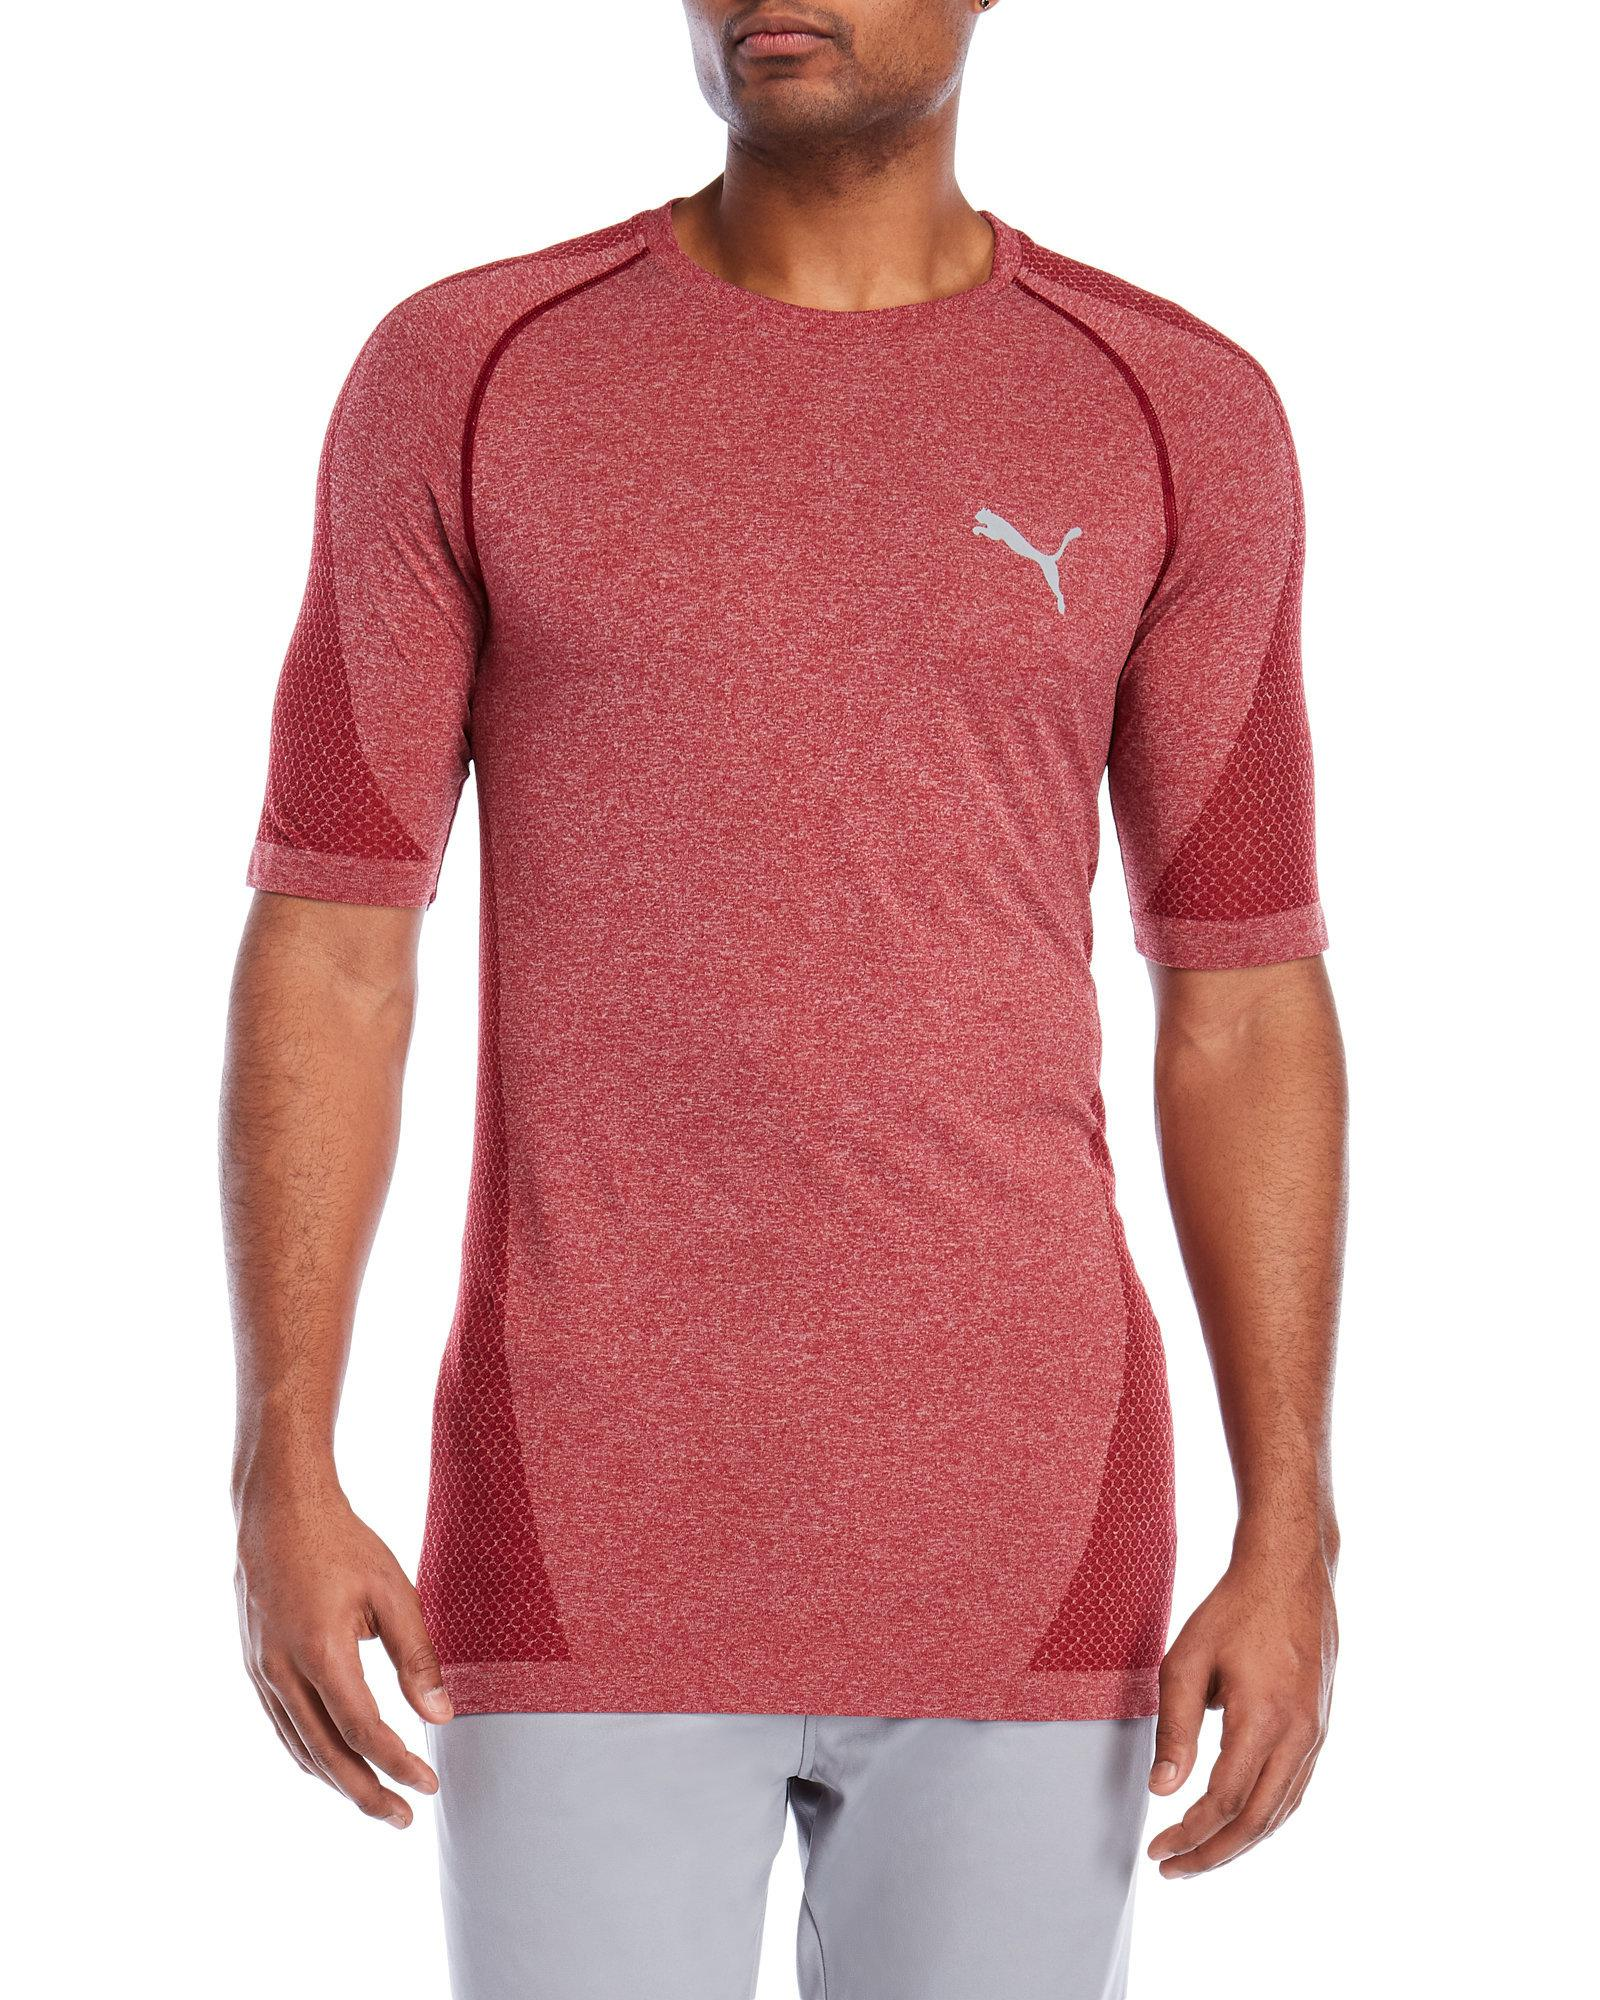 70ab3c1c4ff PUMA Evoknit Better Tee in Red for Men - Lyst